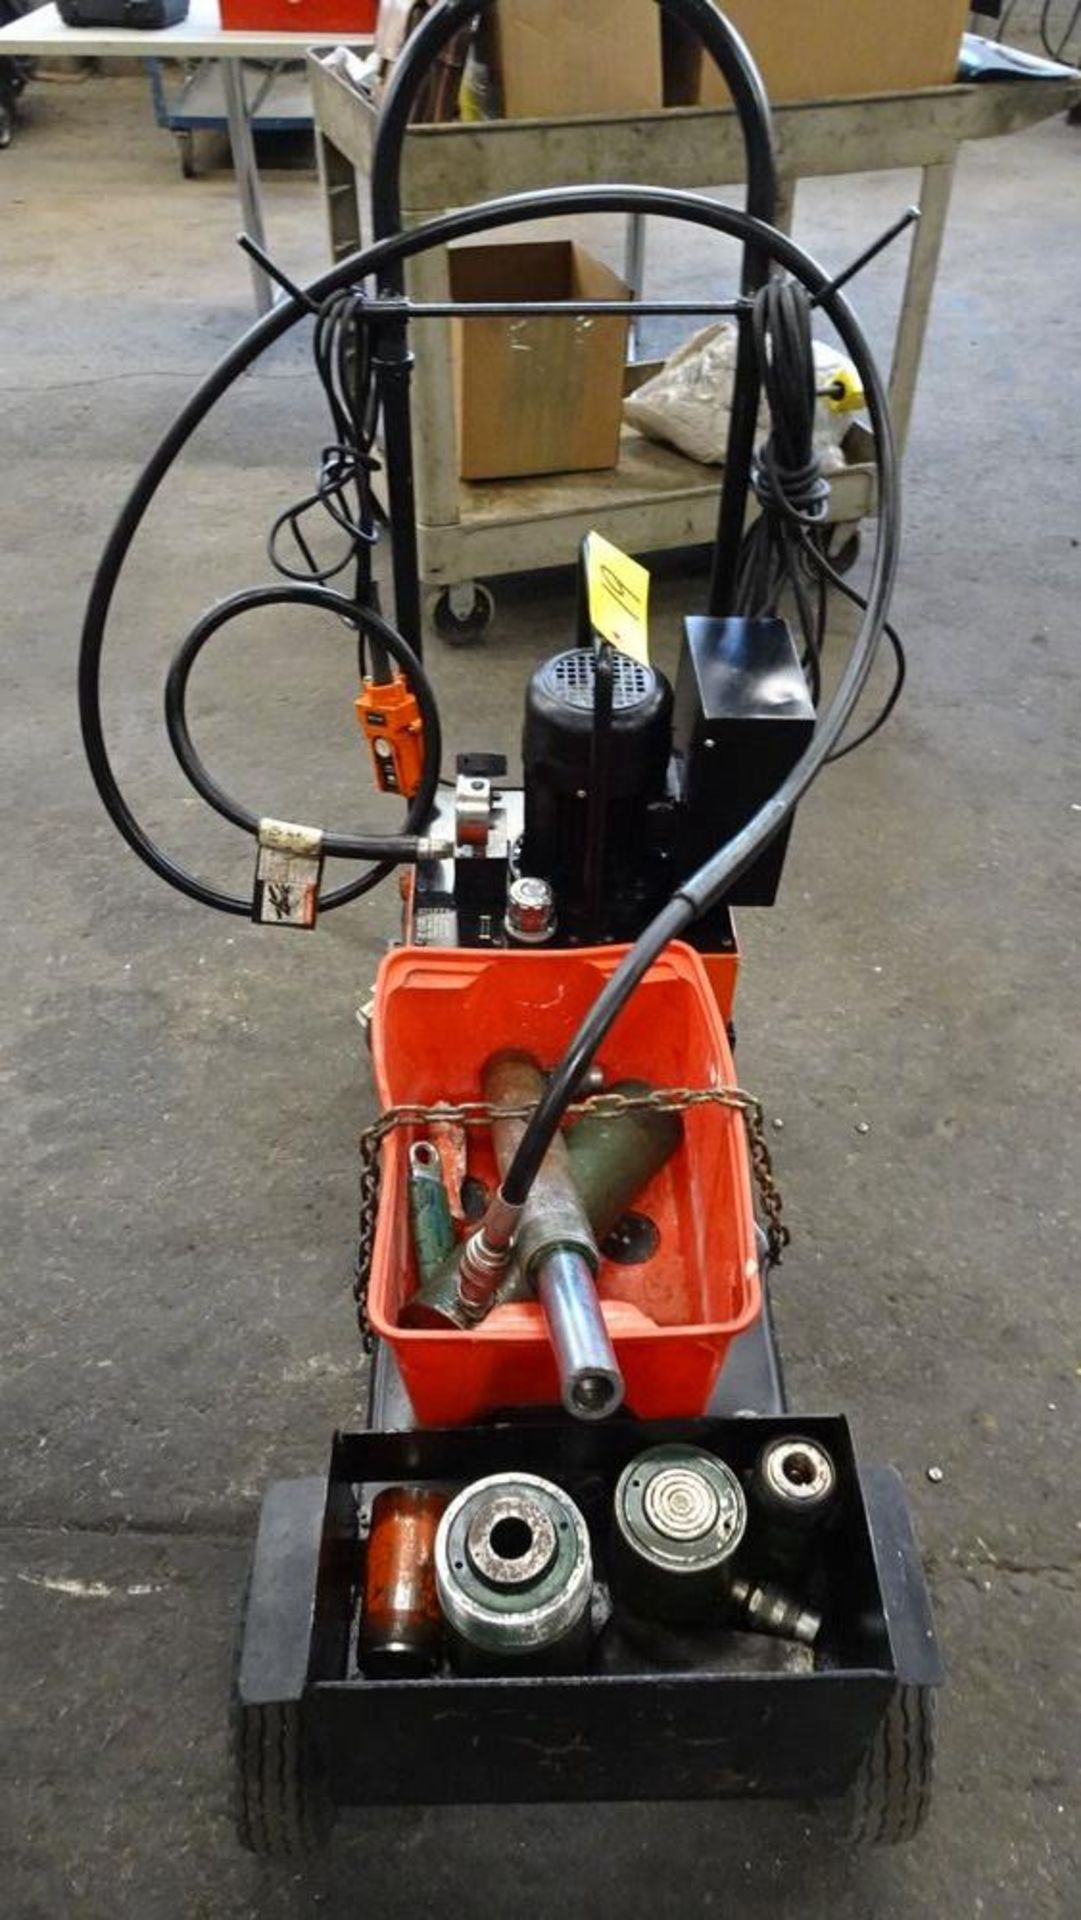 Lot 19 - EAGLE PRO EPB -3B1P5A SERIES HYDRAULIC POWER PACK C/W (5) ASSORTED SIZE HYDRAULIC RAMS, CART, S/N